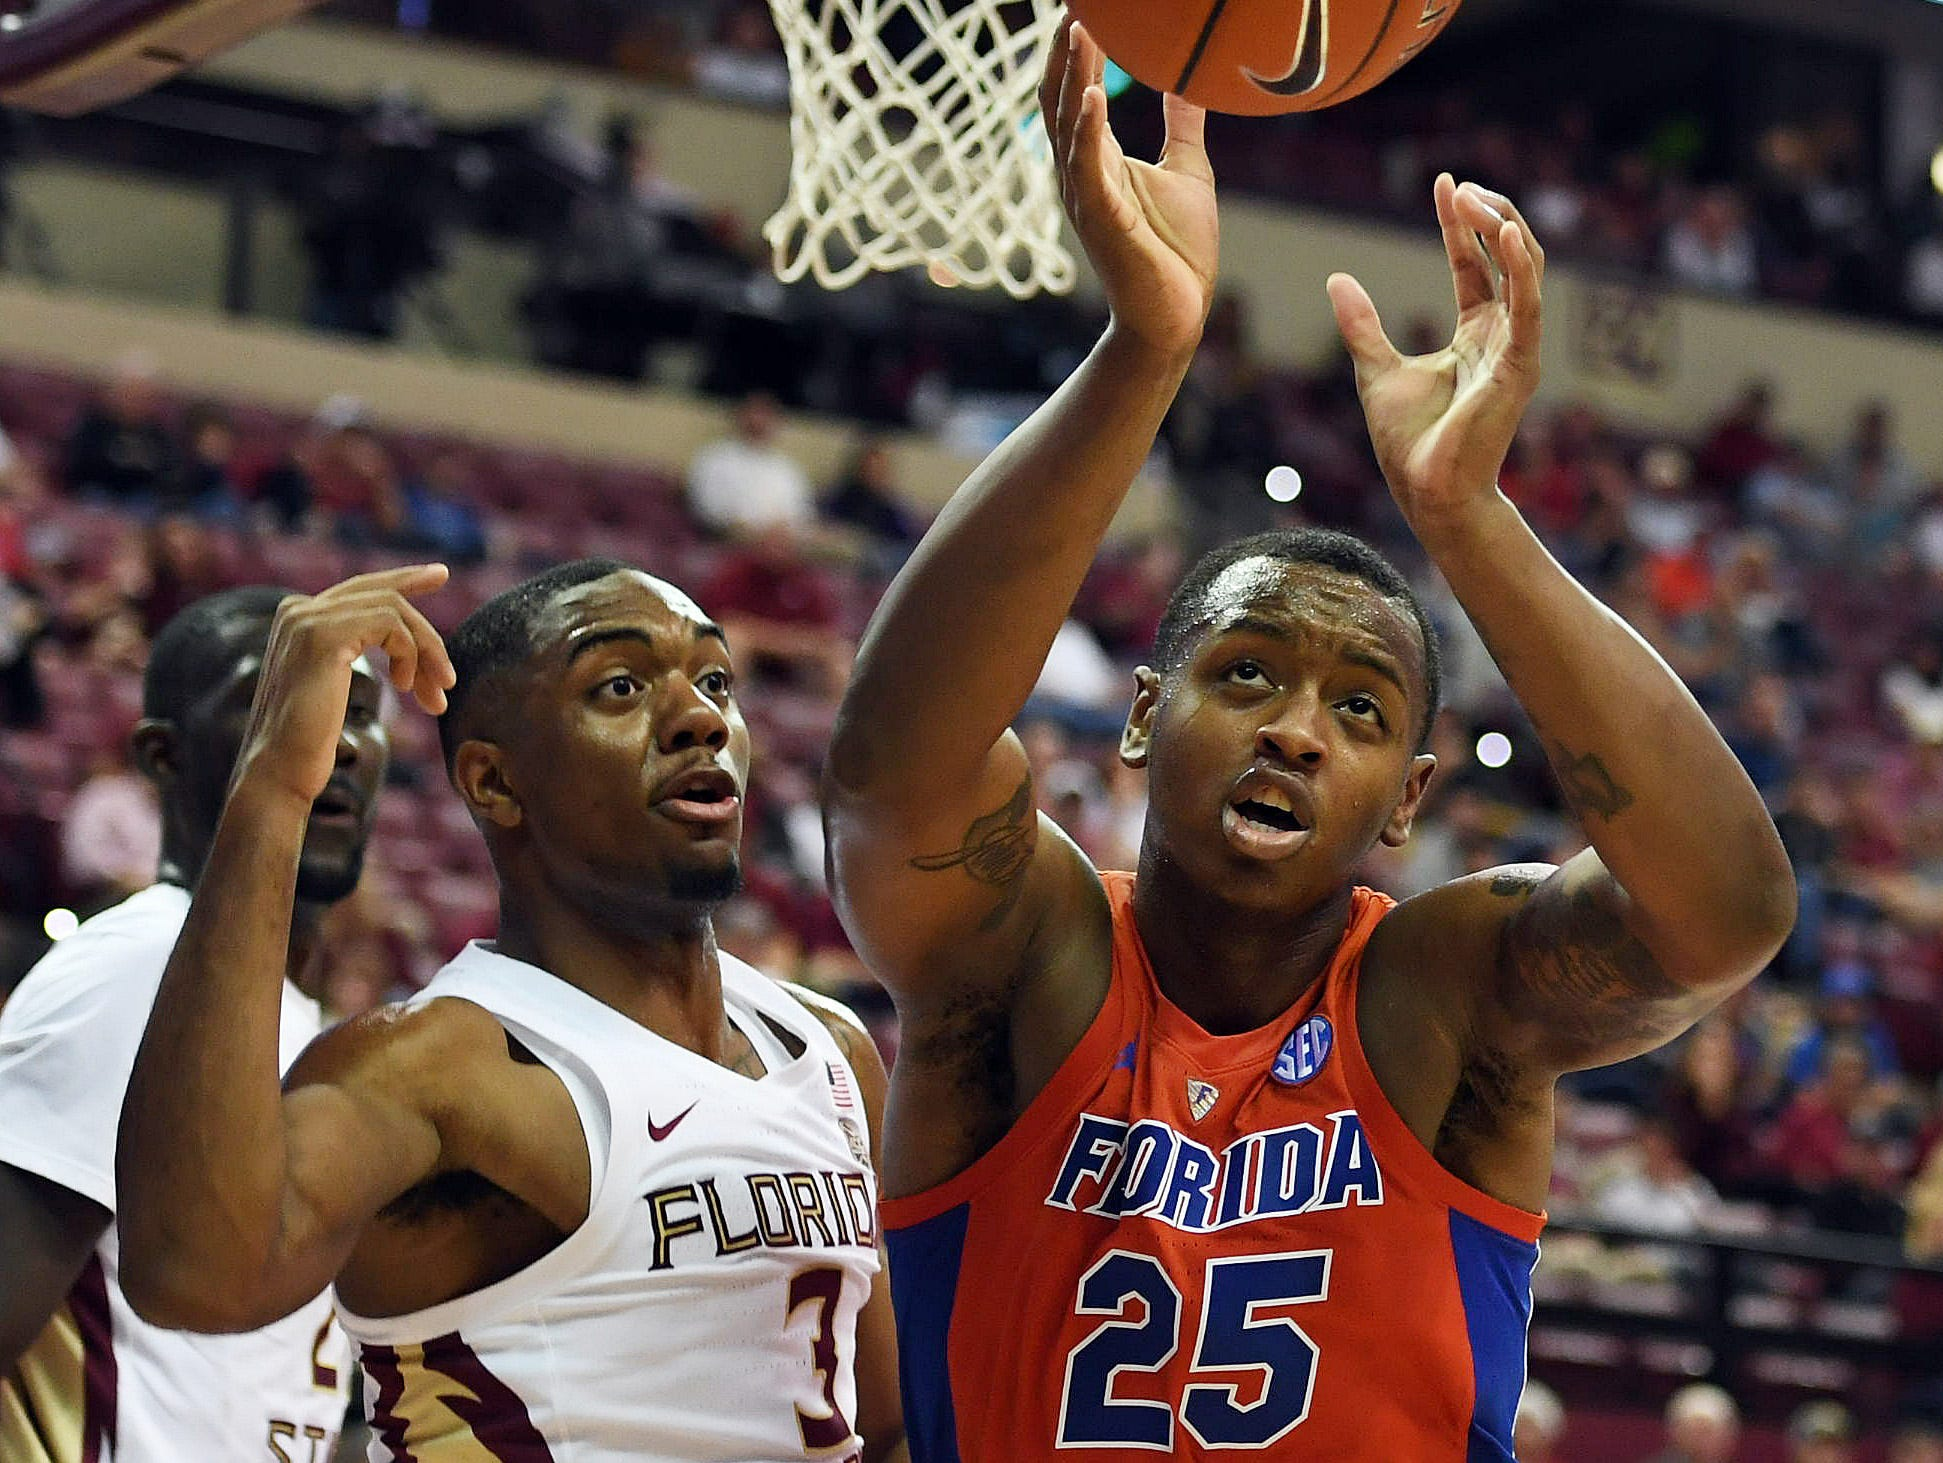 Nov 6, 2018; Tallahassee, FL, USA; Florida State Seminoles guard Trent Forrest (3) and Florida Gators forward Keith Stone (25) fight for a rebound during the first half at Donald L. Tucker Center. Mandatory Credit: Melina Myers-USA TODAY Sports